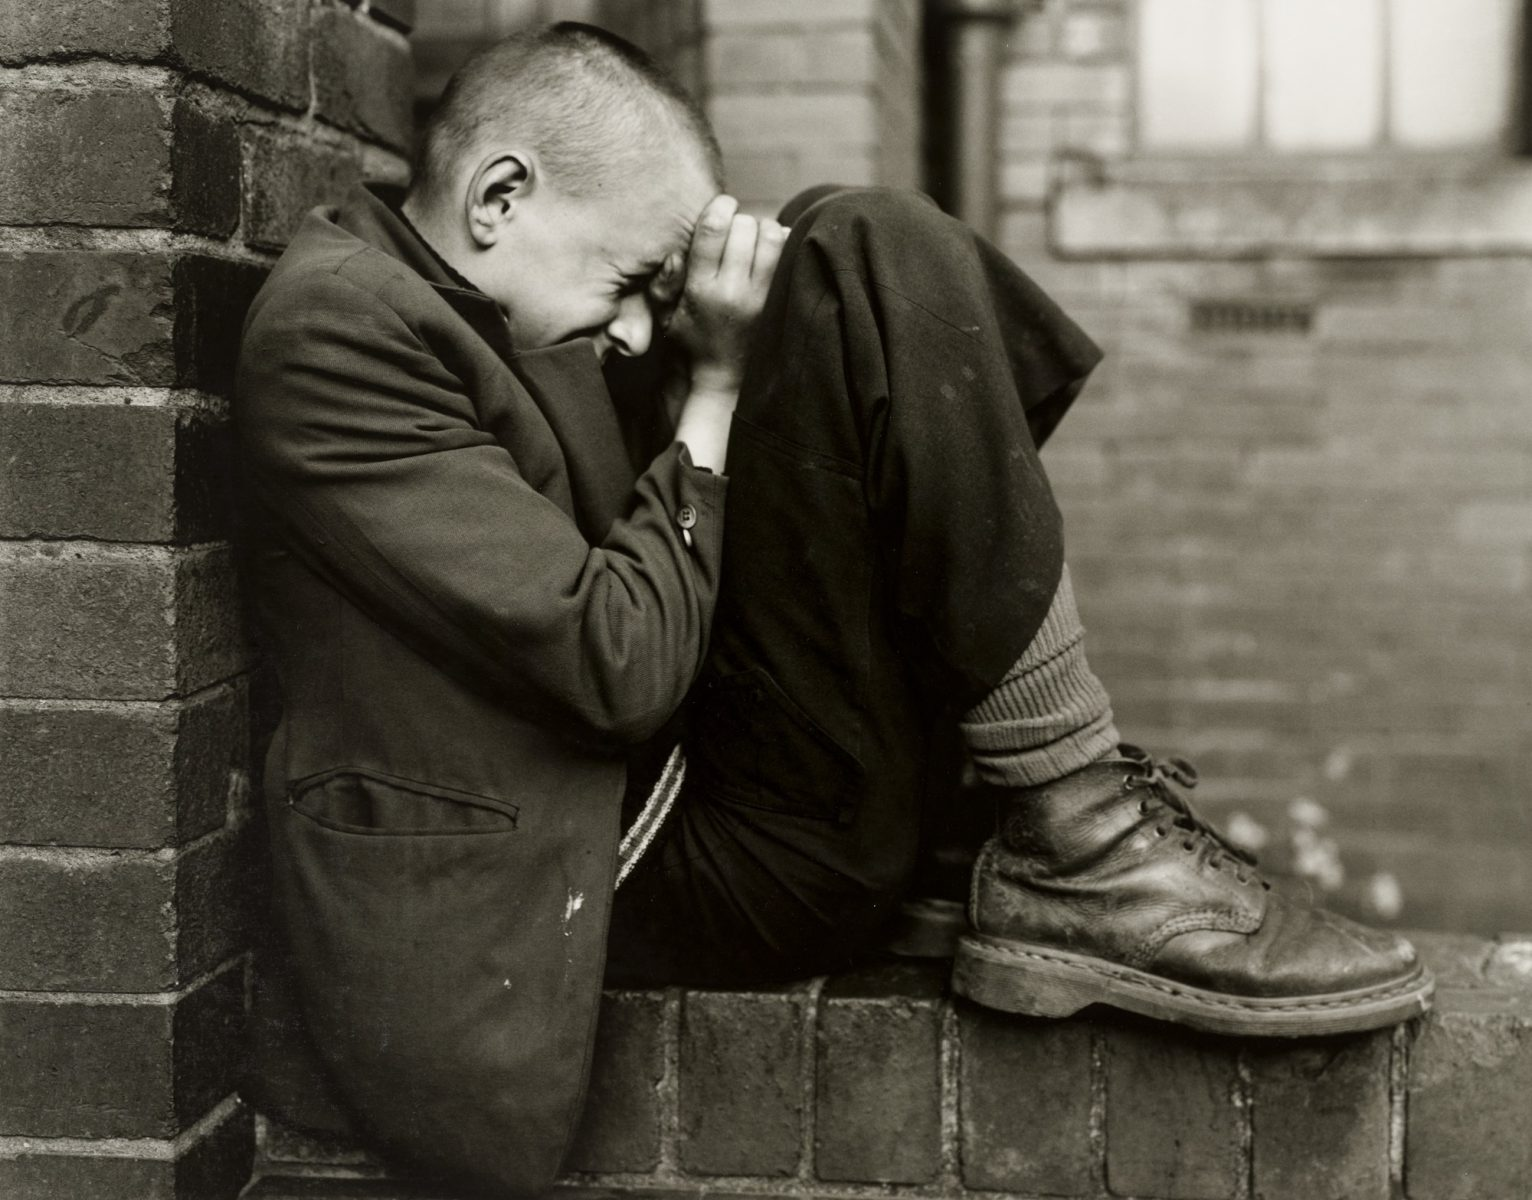 Youth on wall, Jarrow, Tyneside, UK, 1976 by Chris Killip - Photography and solitude